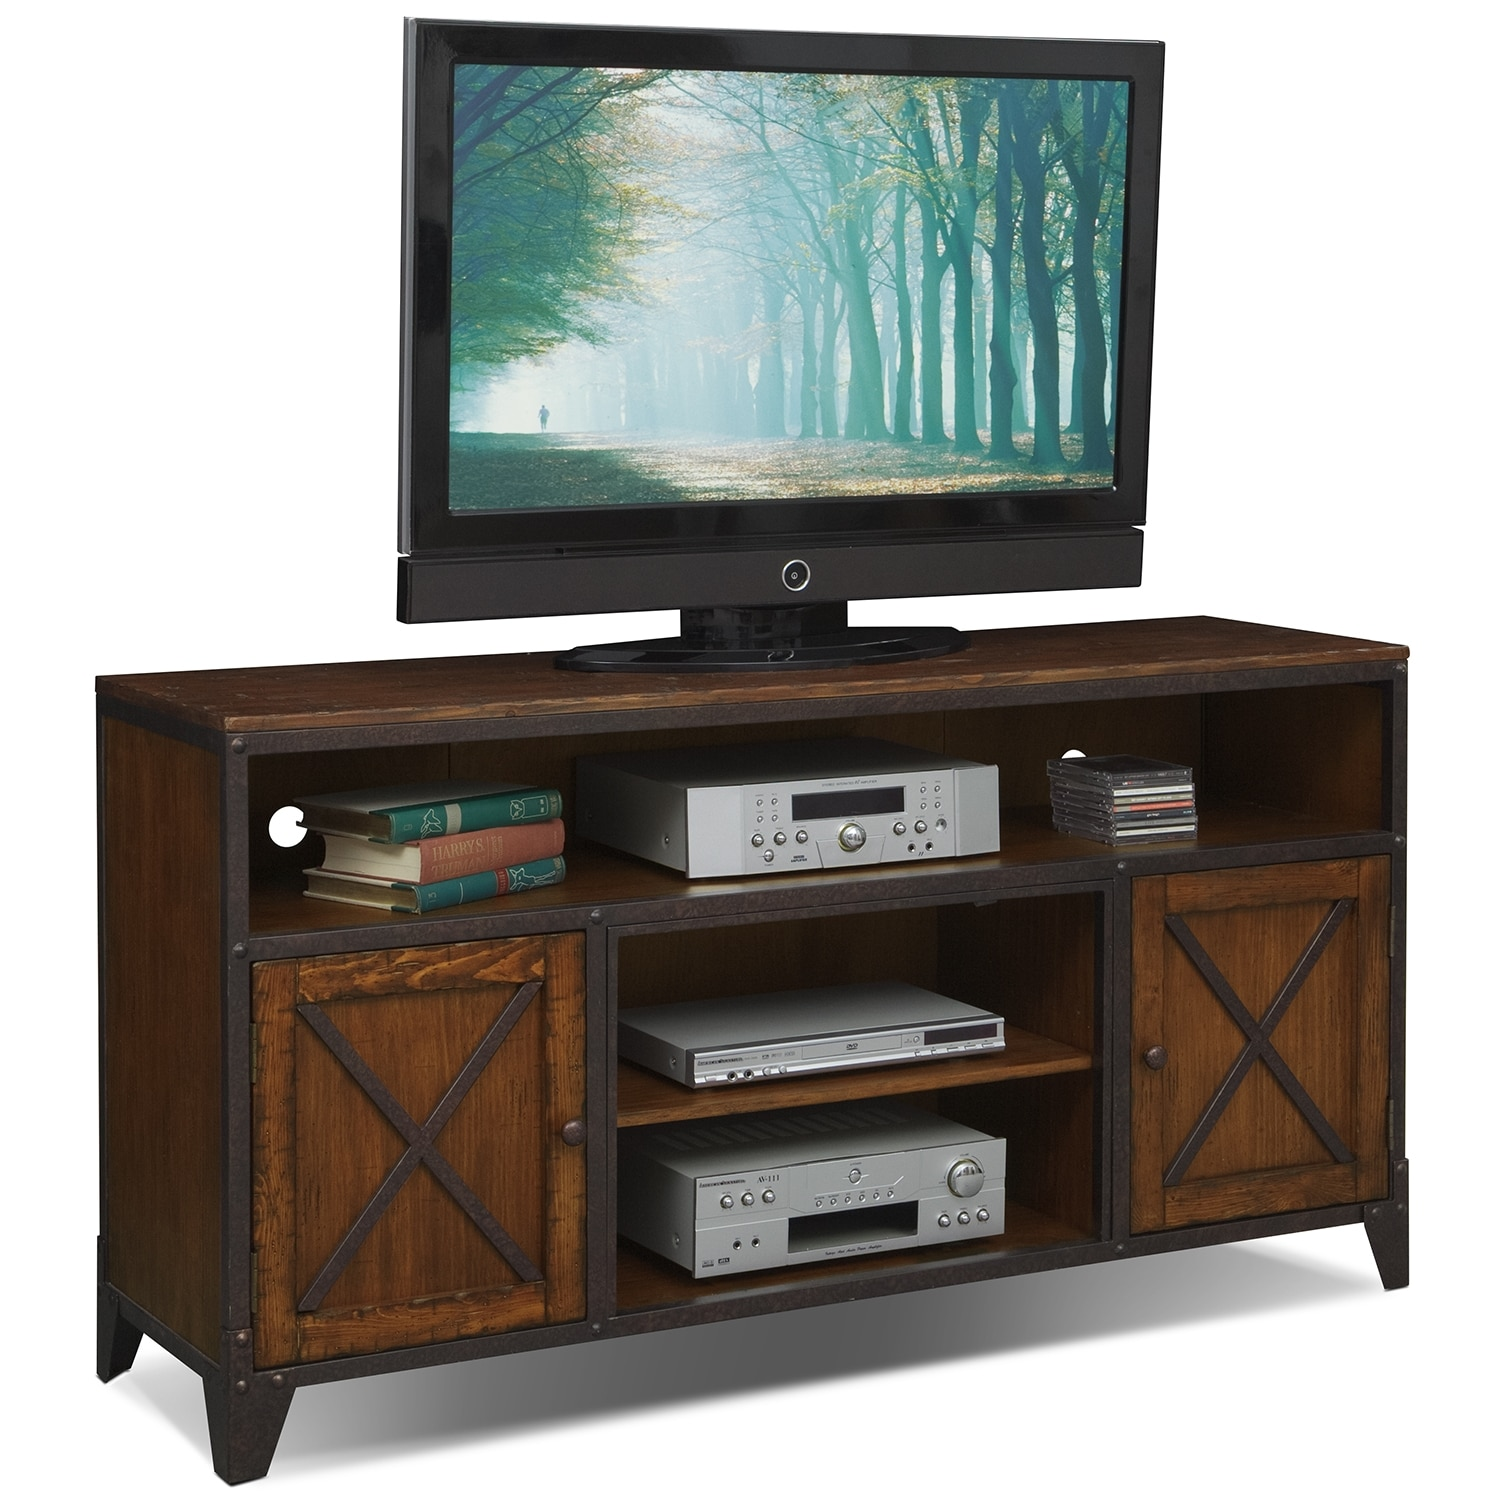 Shortline TV Stand - Distressed Pine